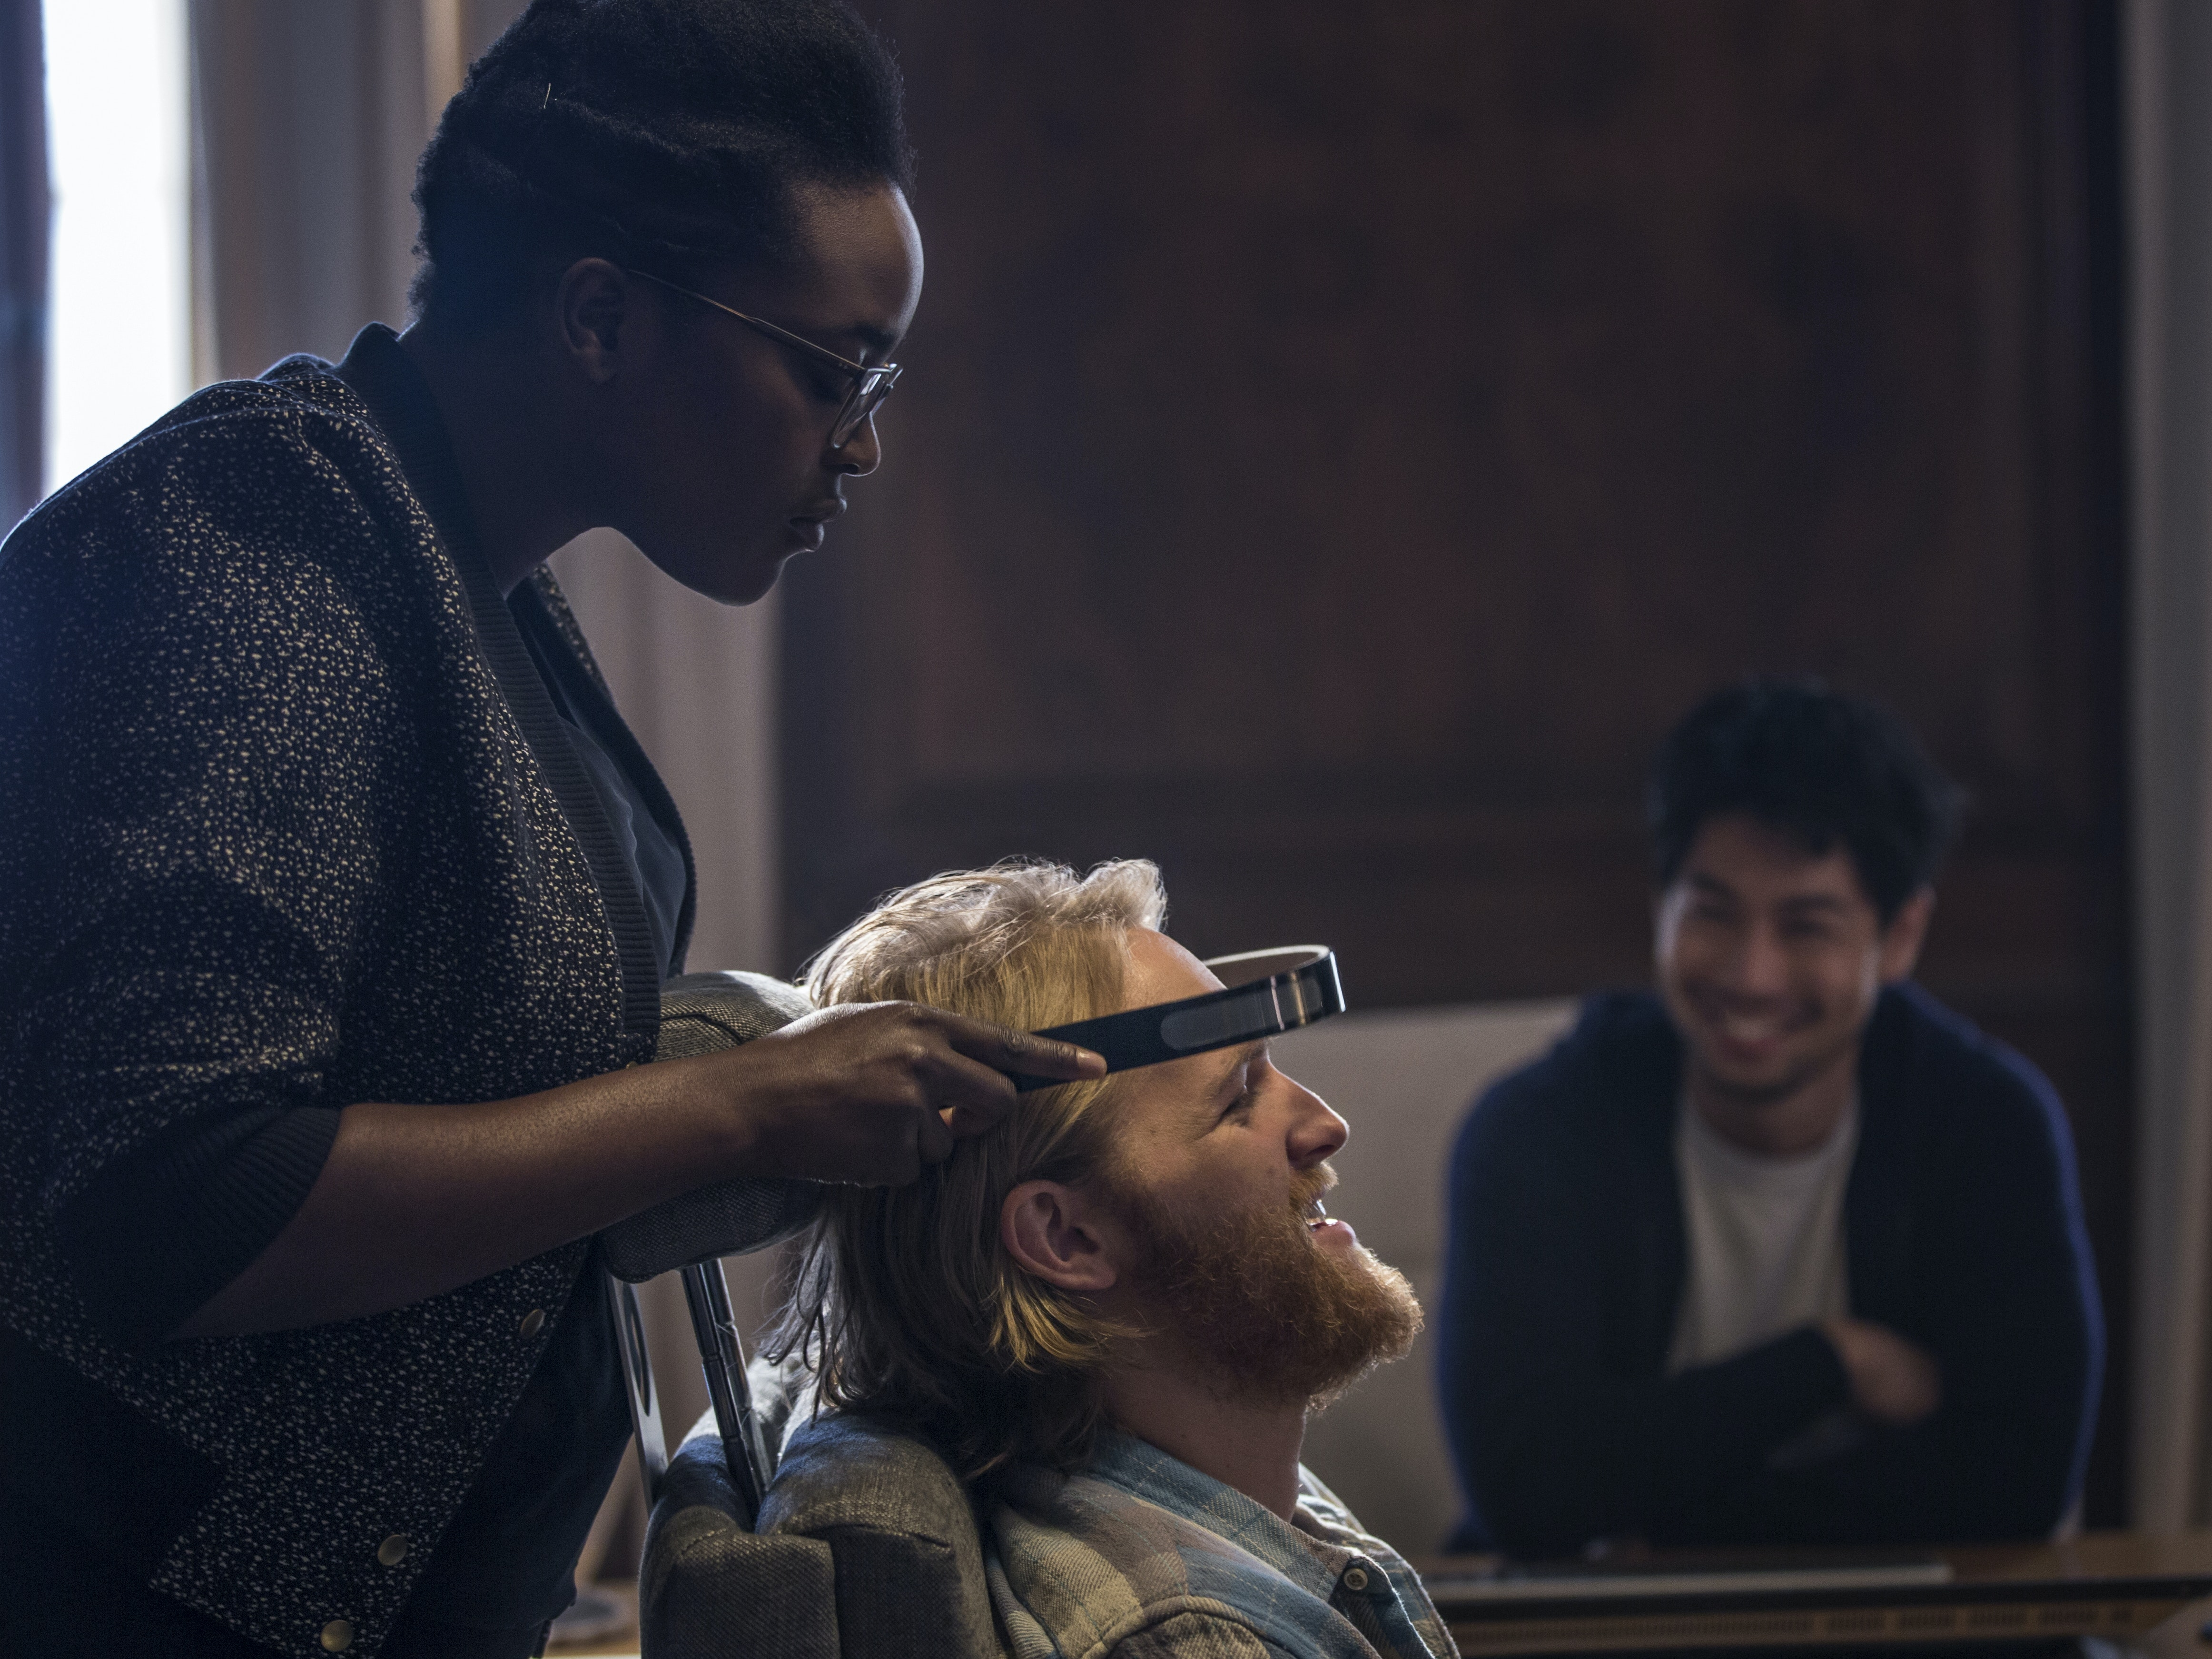 Charlie Brooker Fears Big Brother, But He's Cool With Netflix